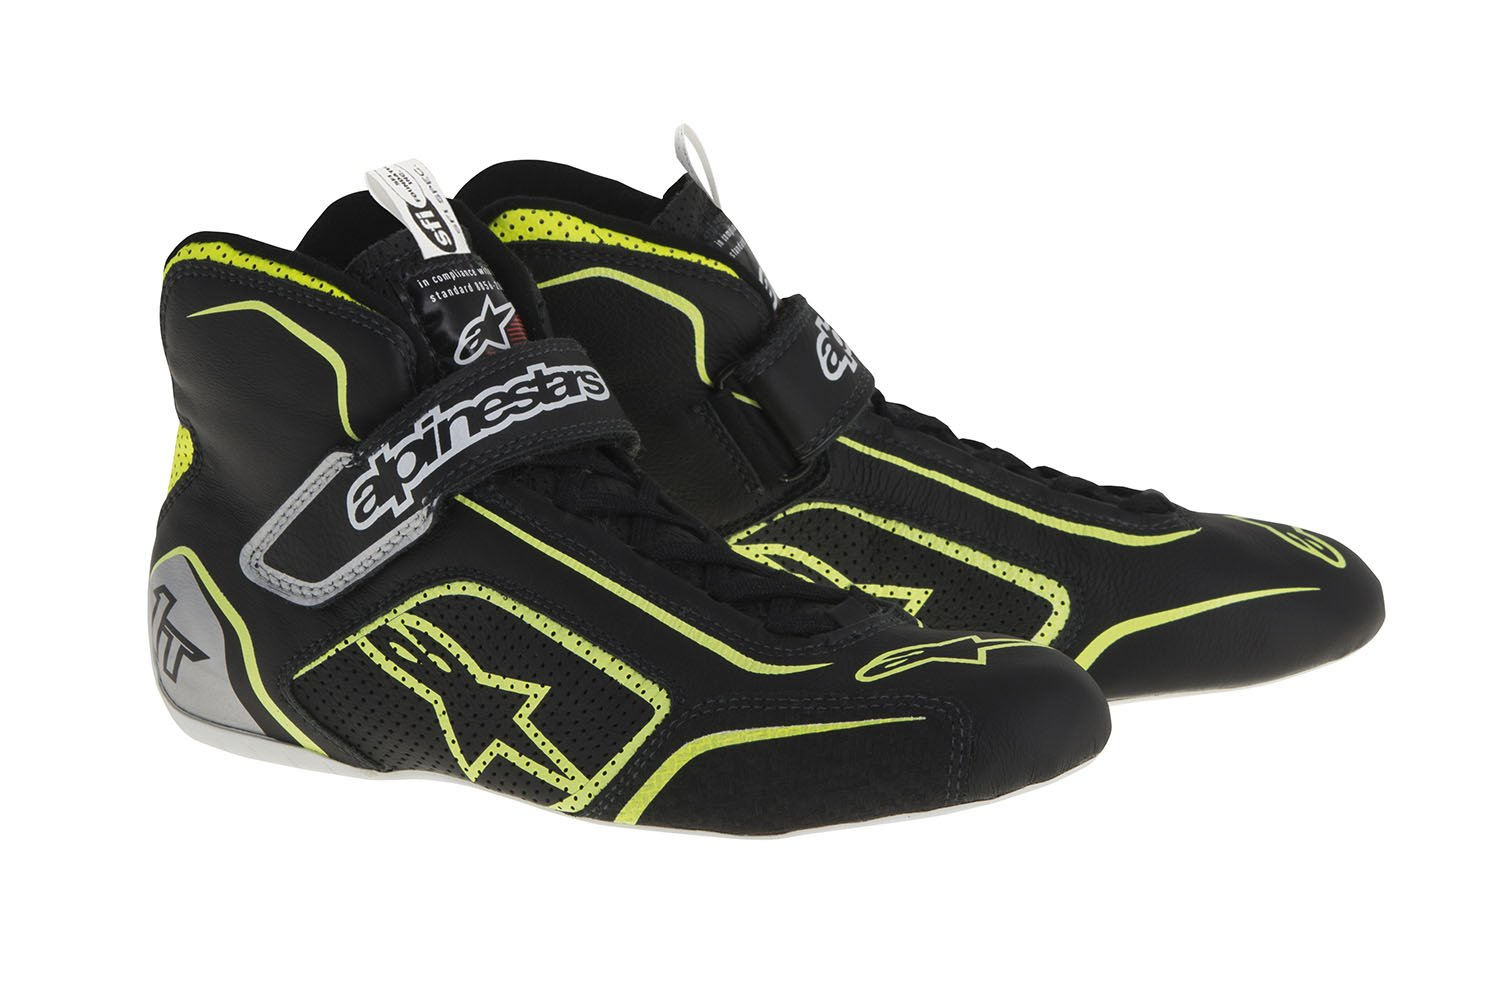 Alpinestars 2710115-1519-10 Tech 1-T Shoes, Black/Fluor Yellow, Size 10, SFI 3.3 Level 5/FIA, Full-Grain Leather by Alpinestars